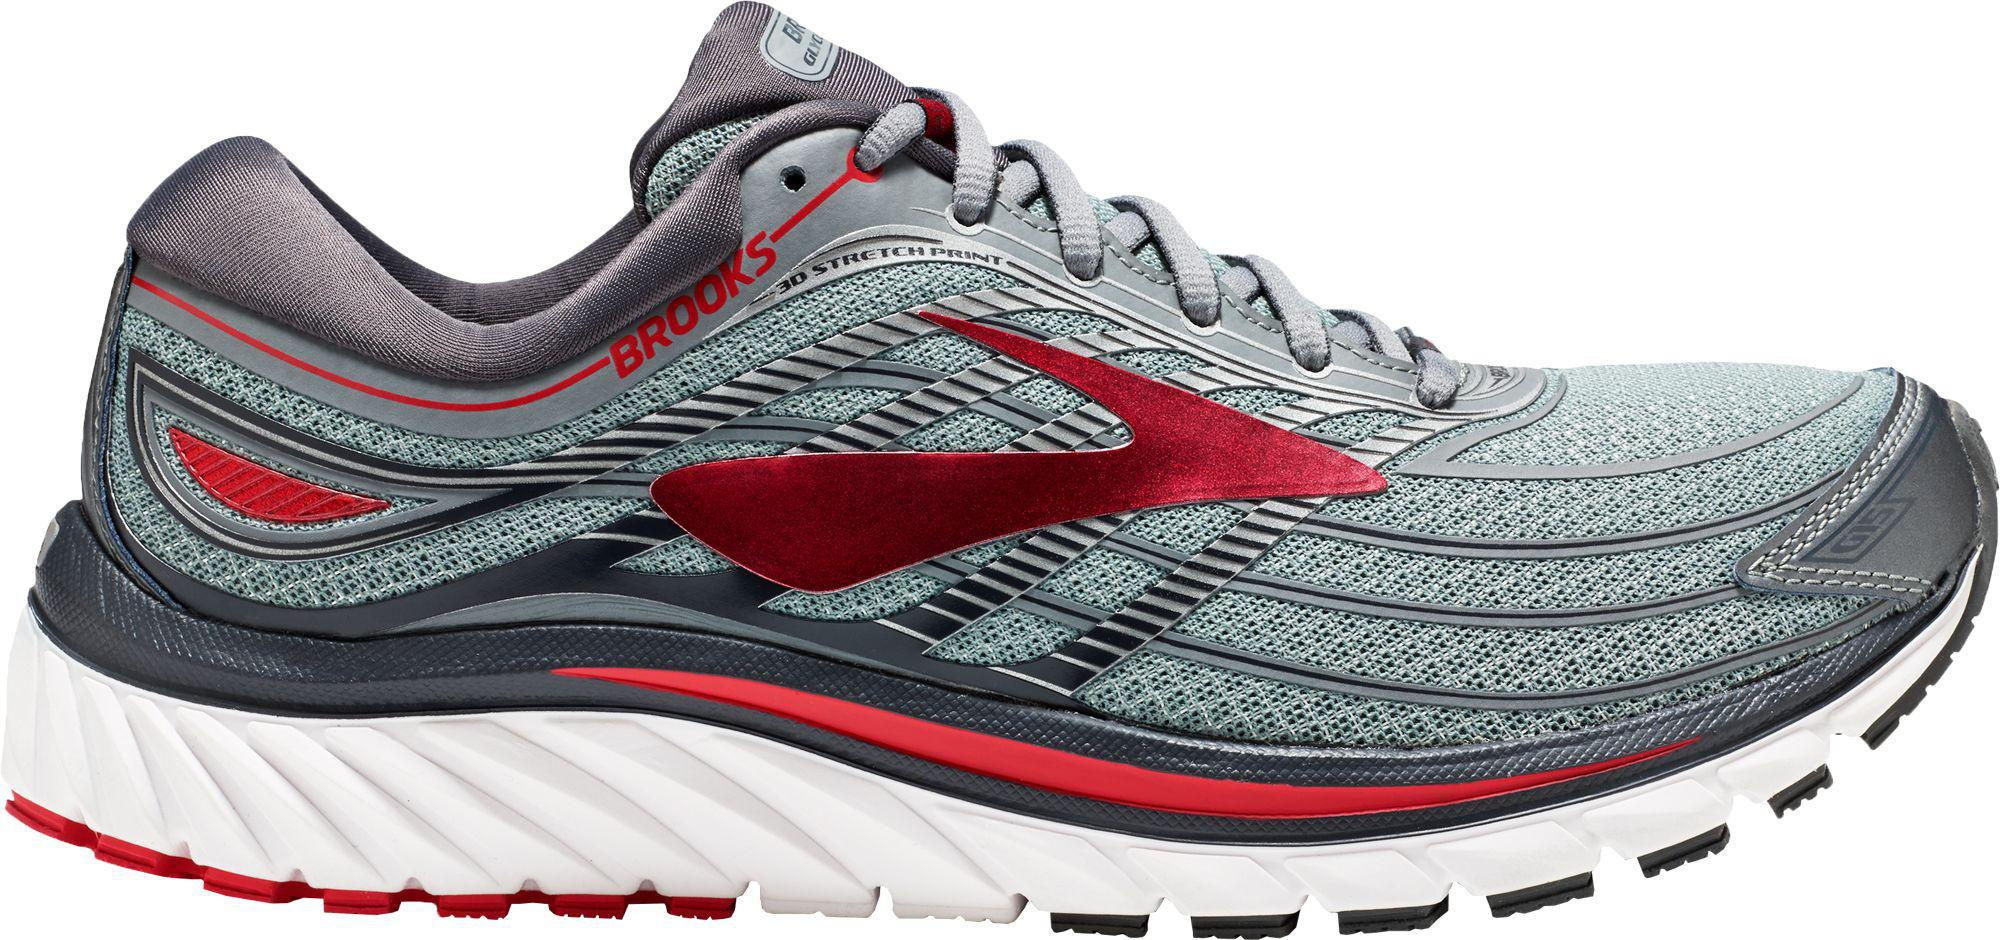 Brooks Rubber Glycerin 15 Running Shoes